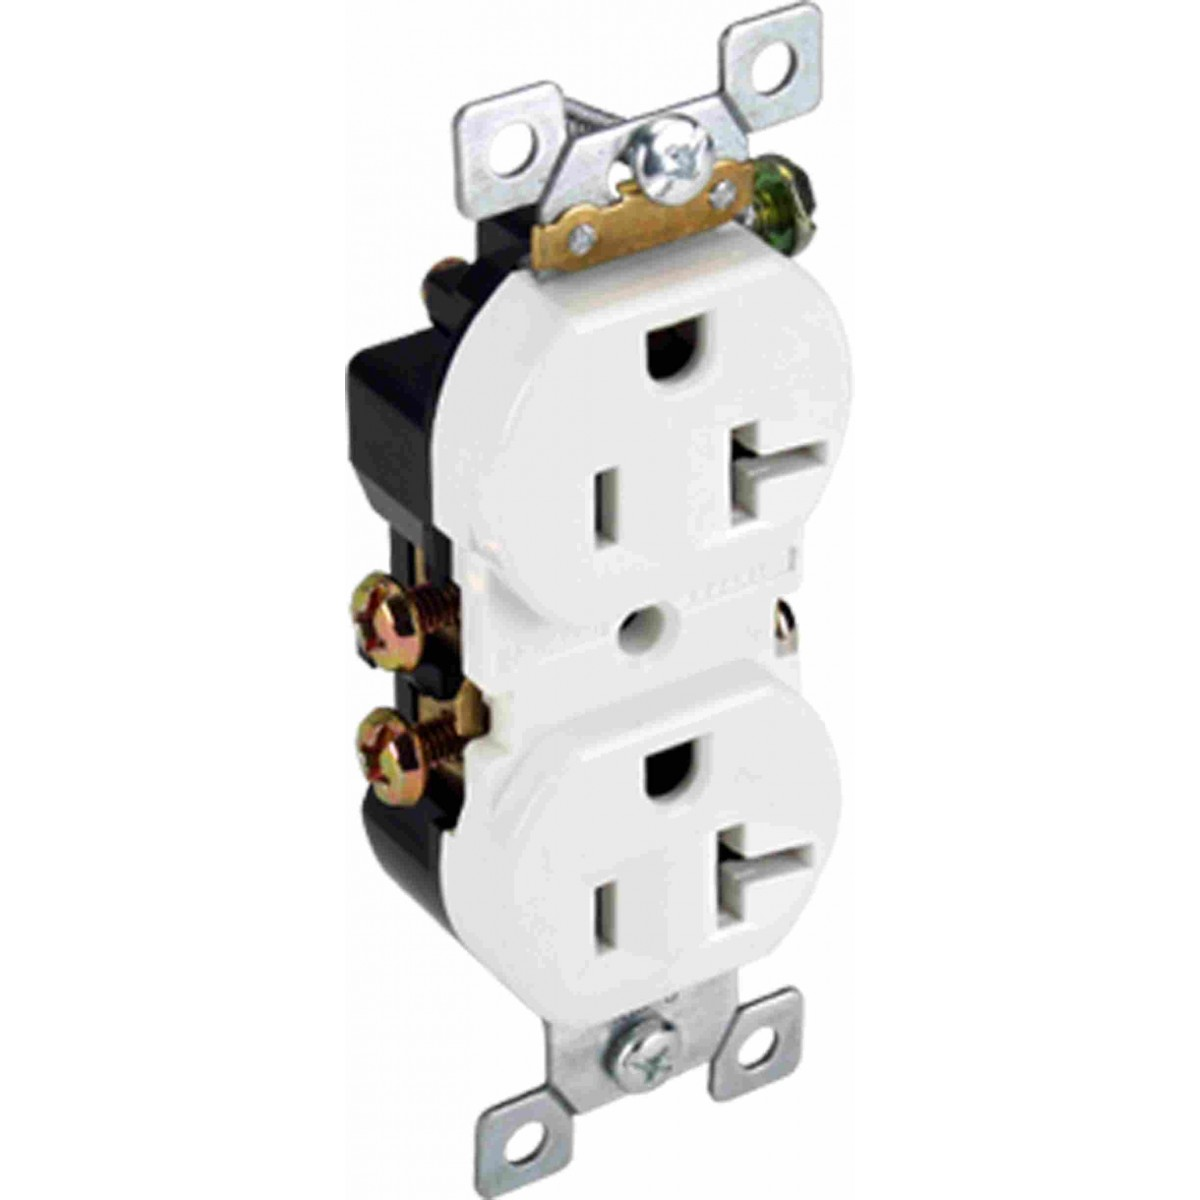 R20 - Duplex Receptacle - Receptacles - Wiring Devices